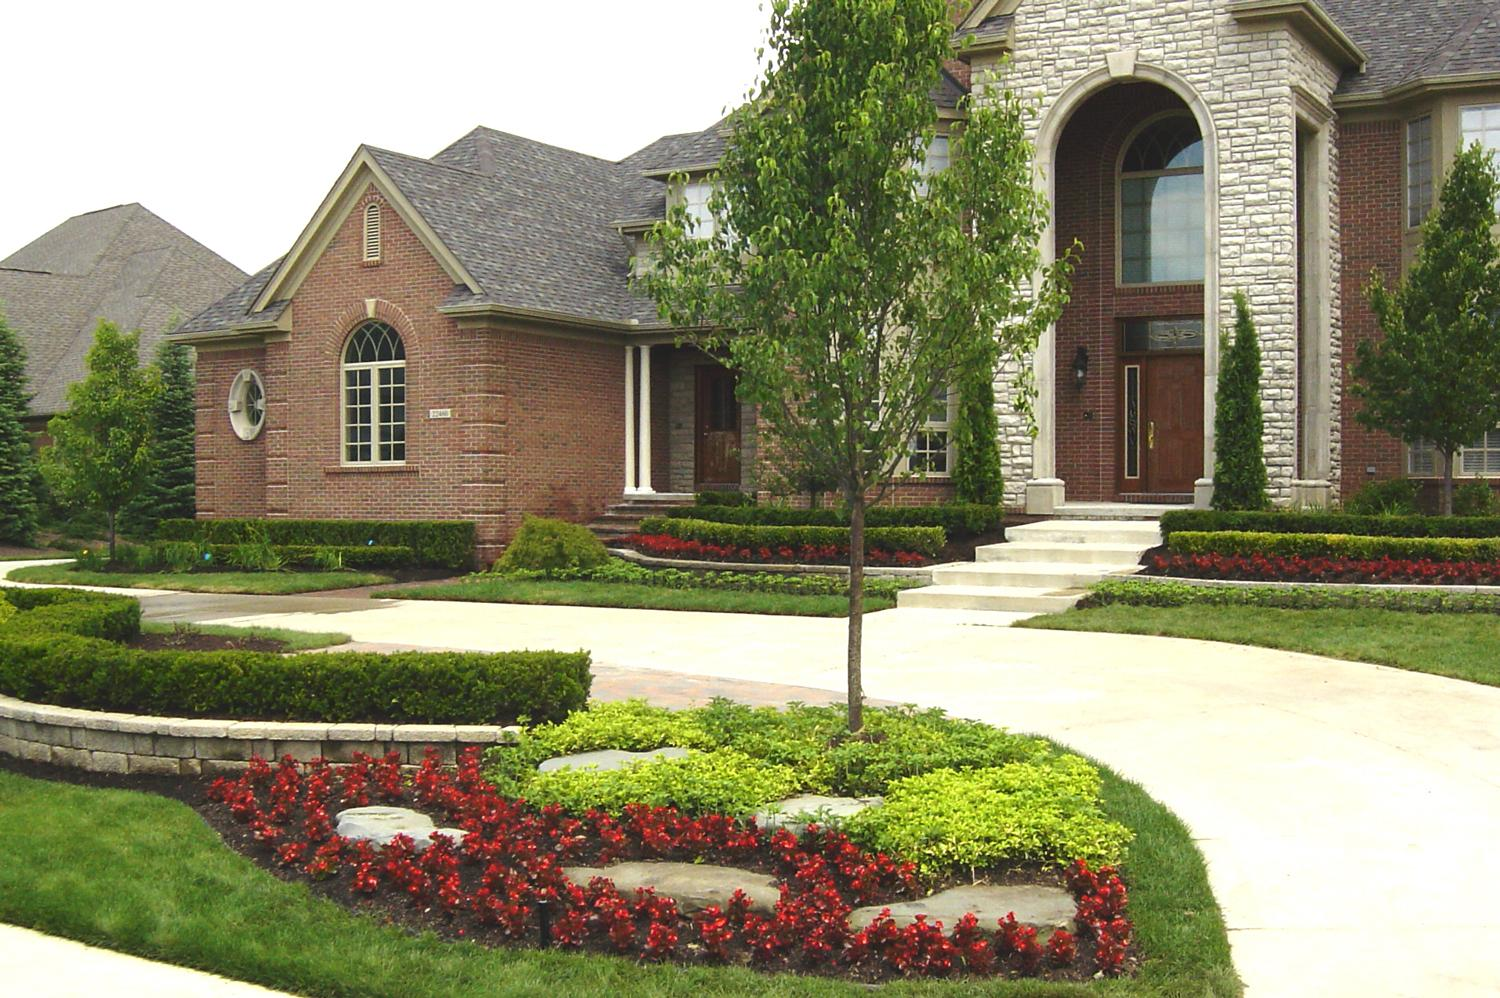 Front yard landscaping ideas dream house experience for Yard landscape design